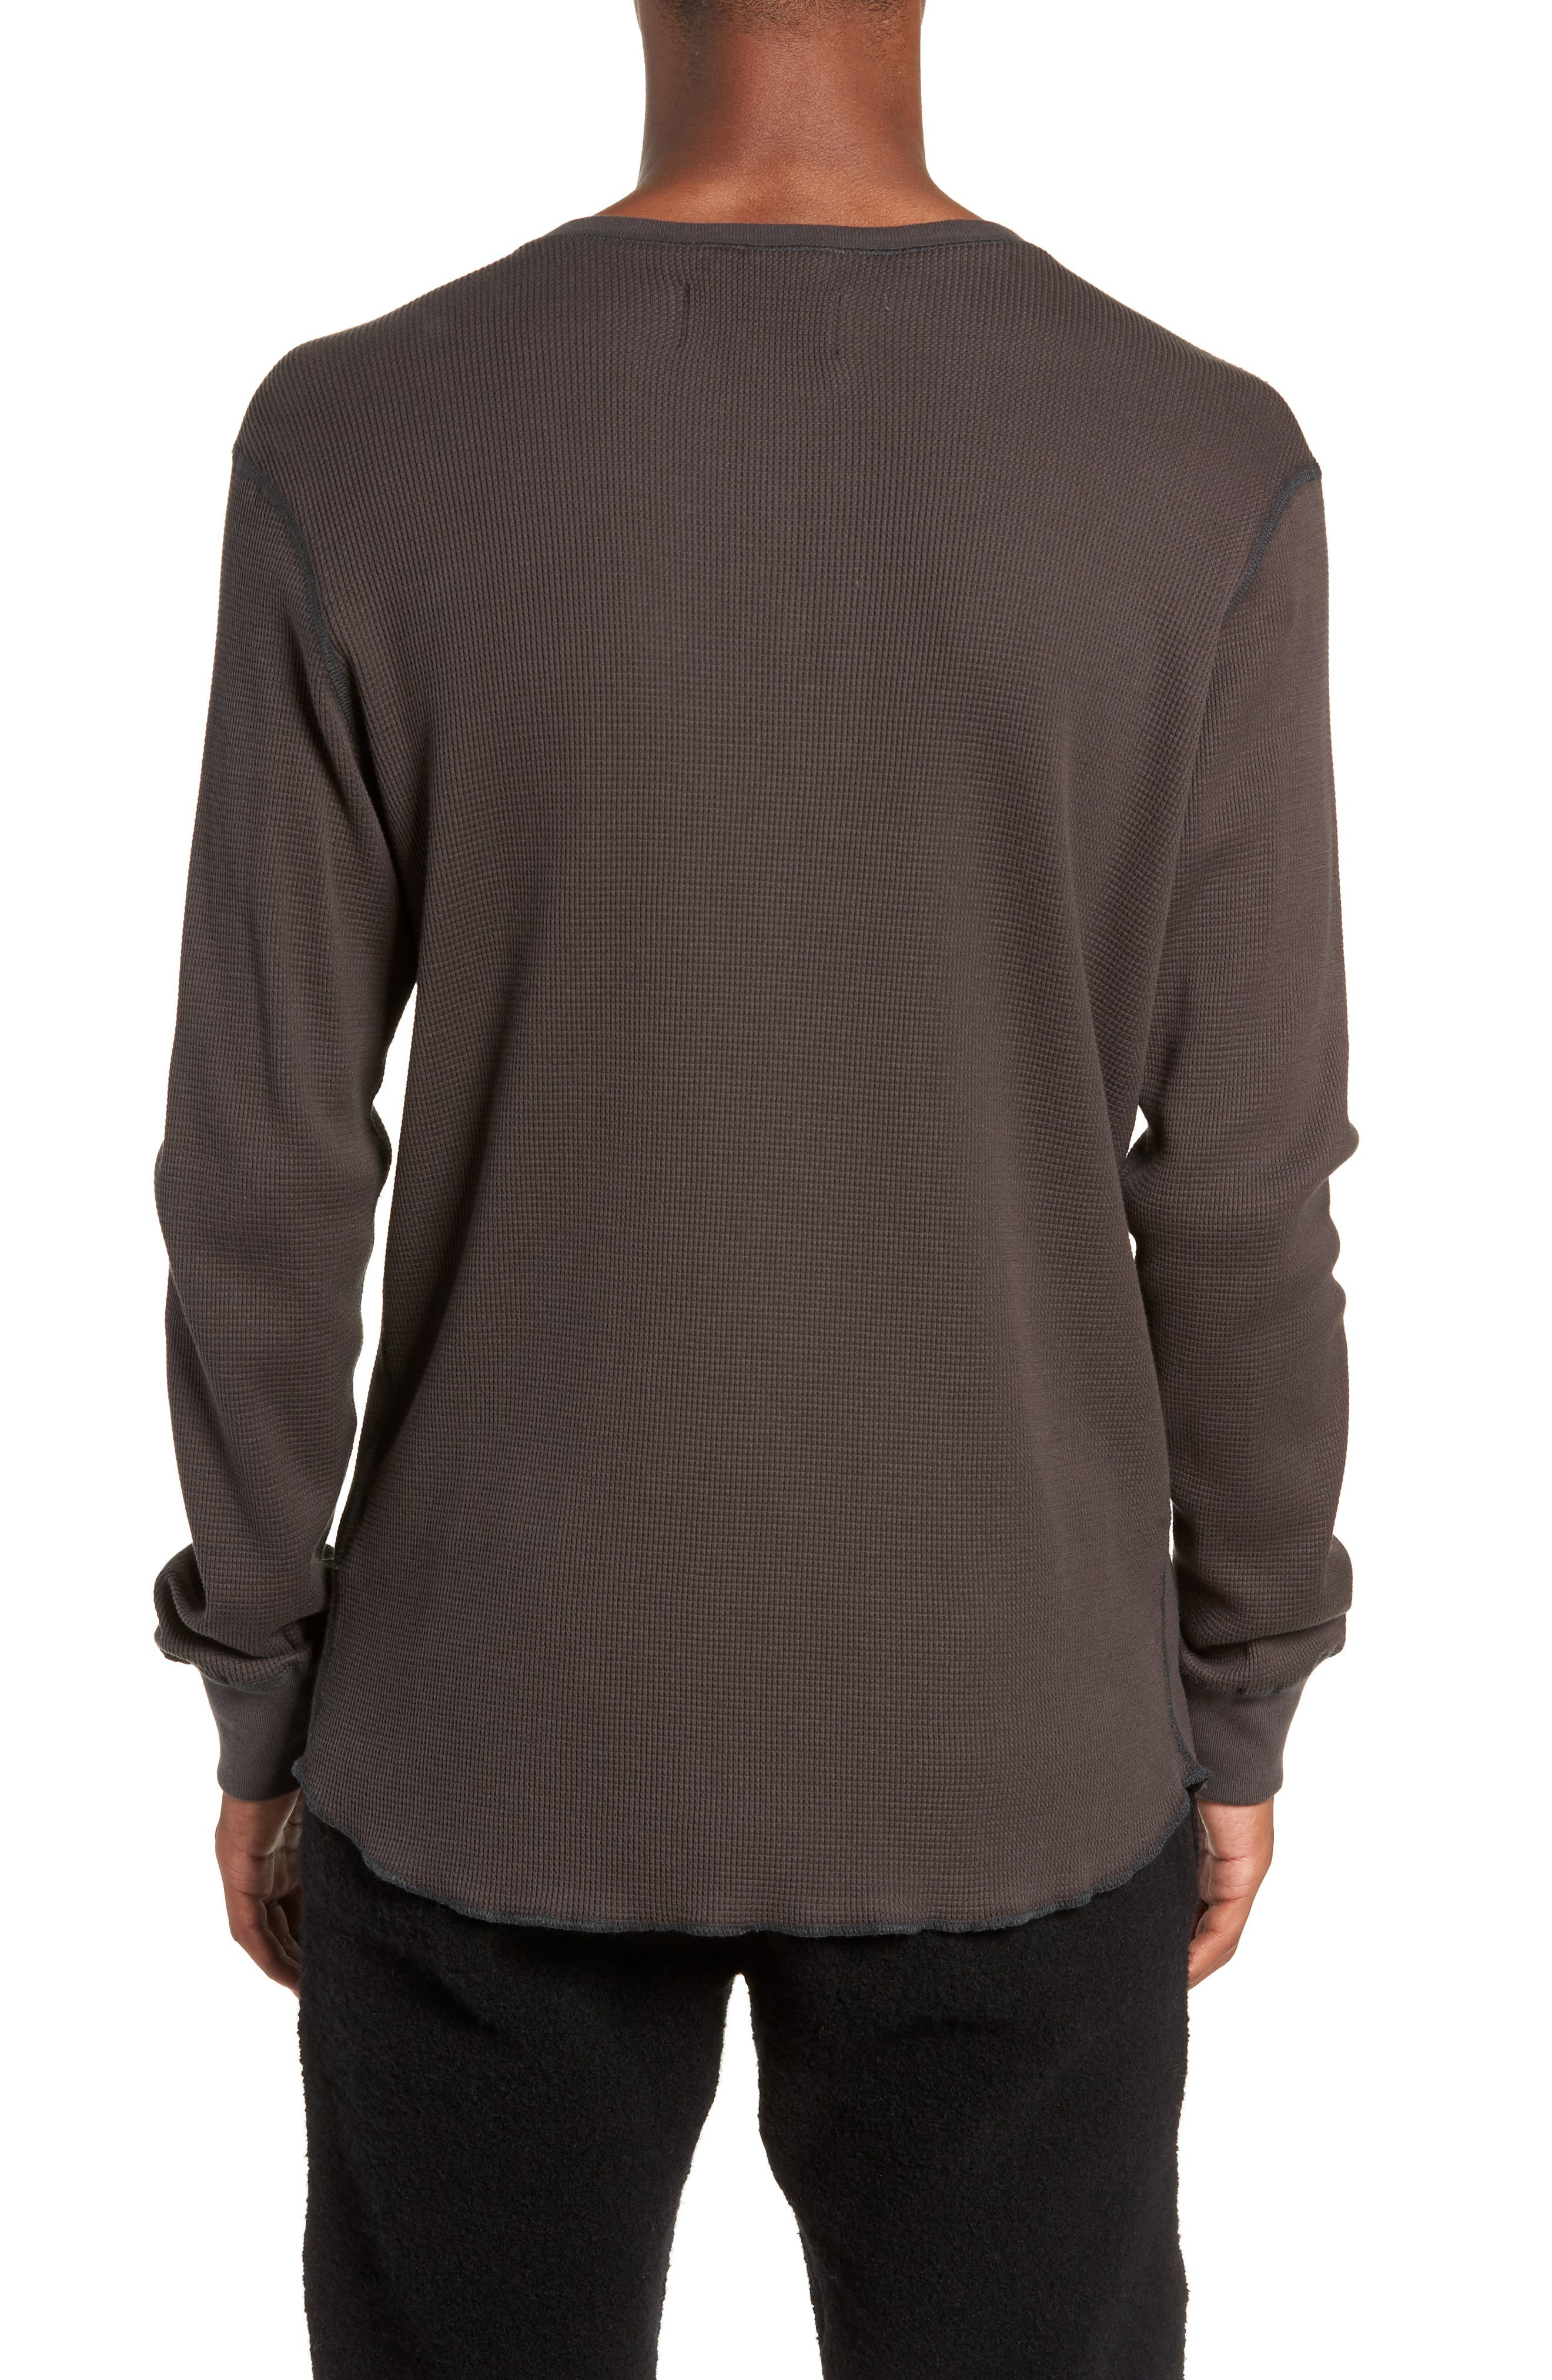 WINGS + HORNS,                             Long Sleeve Thermal Henley,                             Alternate thumbnail 2, color,                             STONE